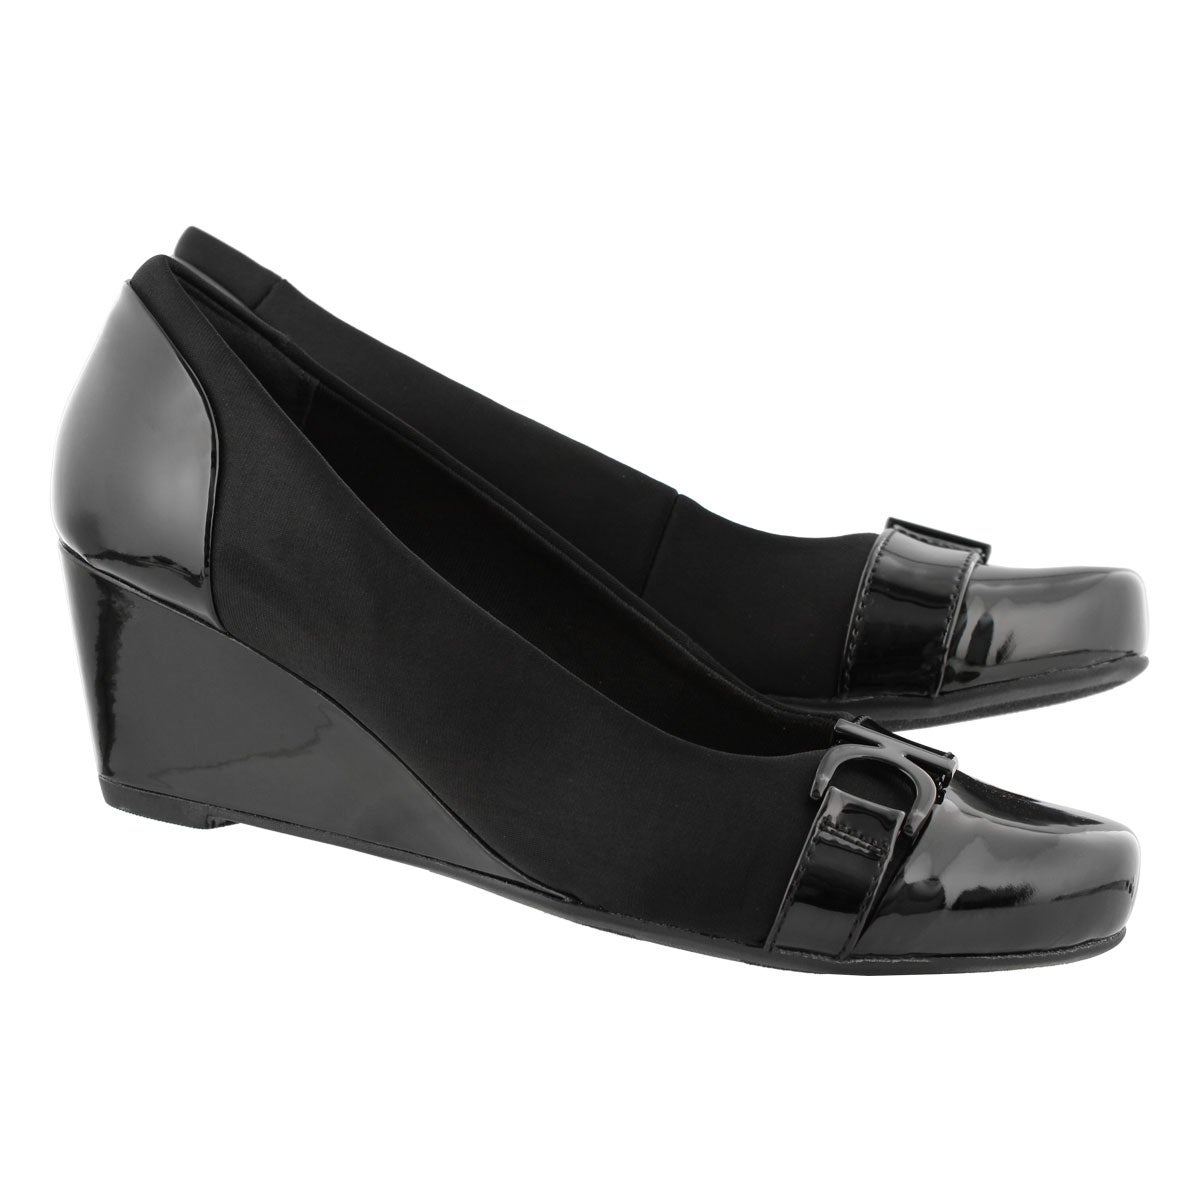 Lds Flores Poppy black dress wedge